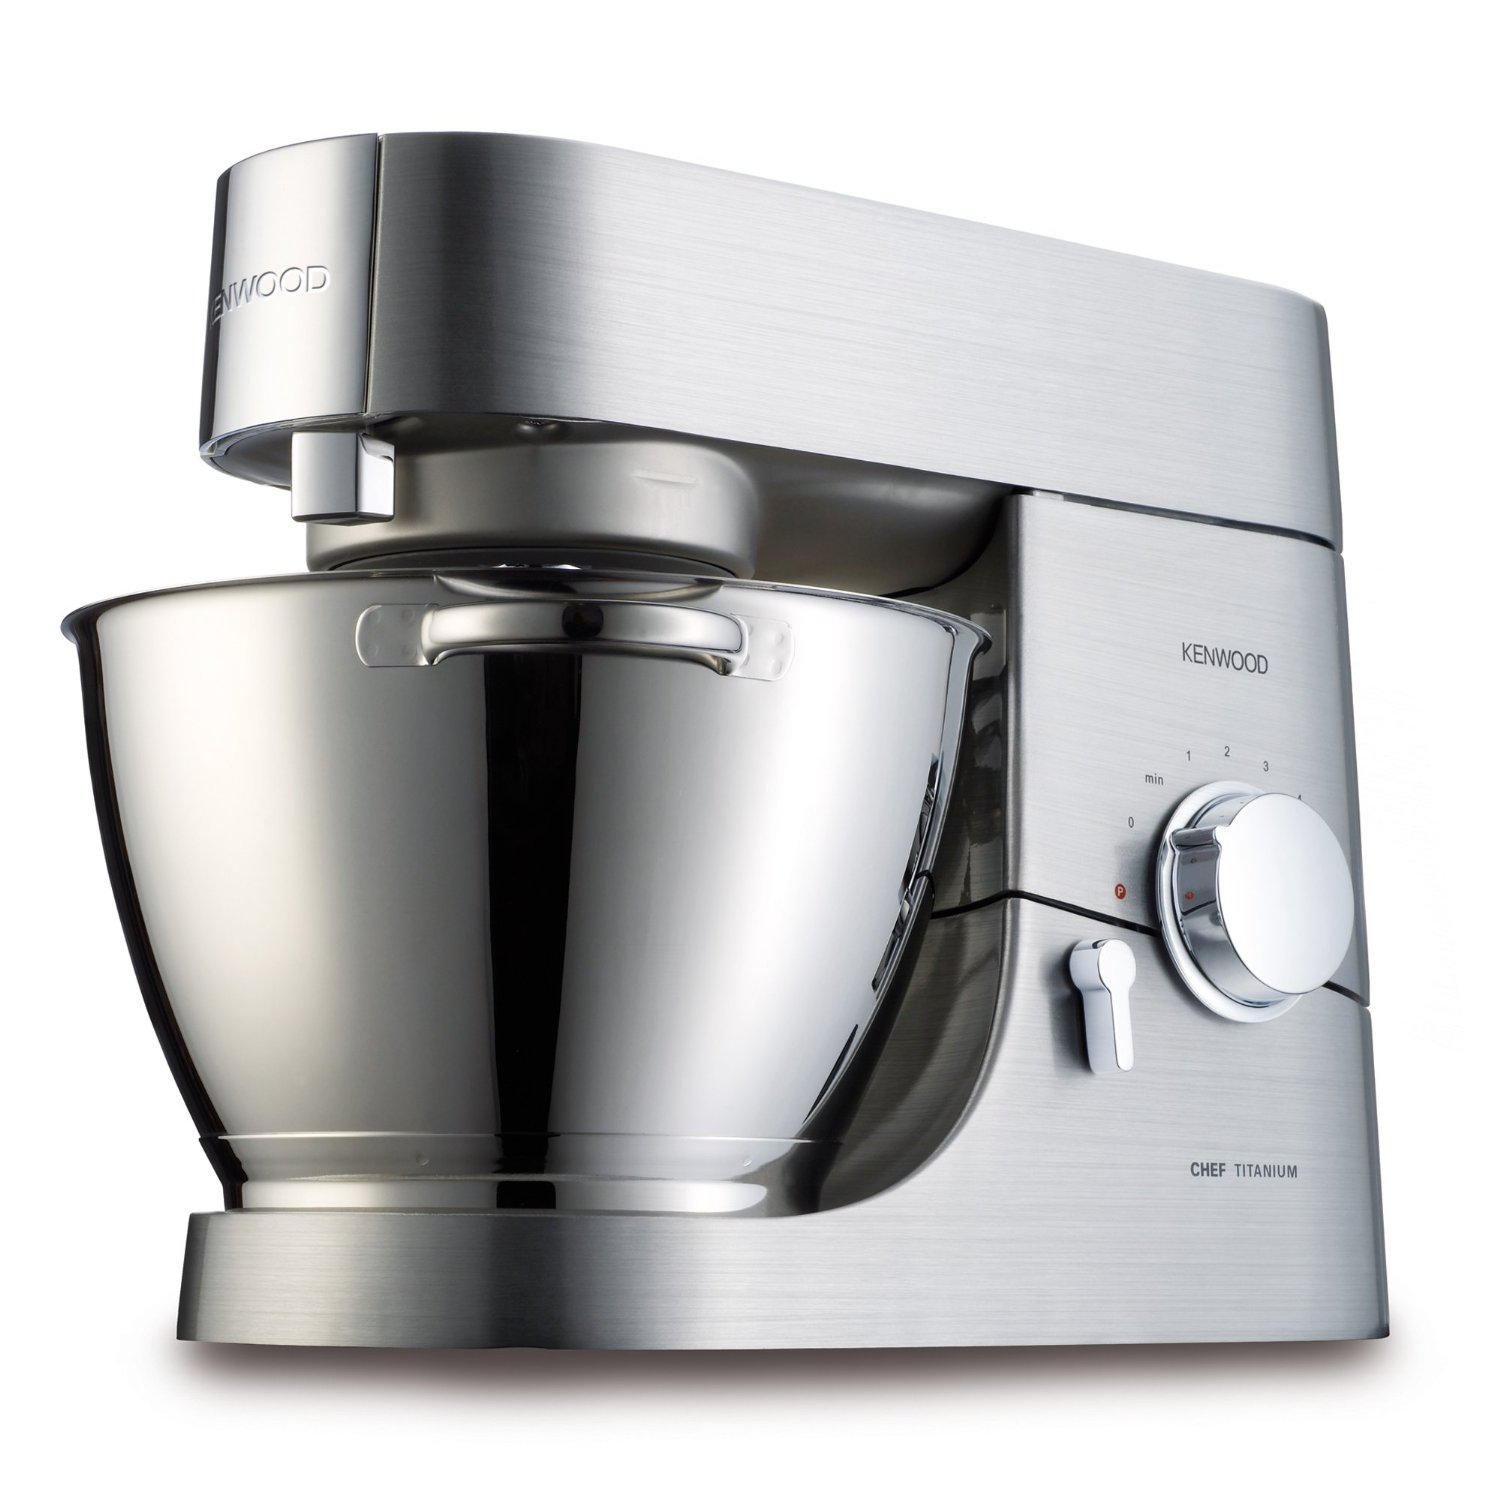 Test du robot de cuisine multi fonction kenwood kmc050 for Robot de cuisine kenwood